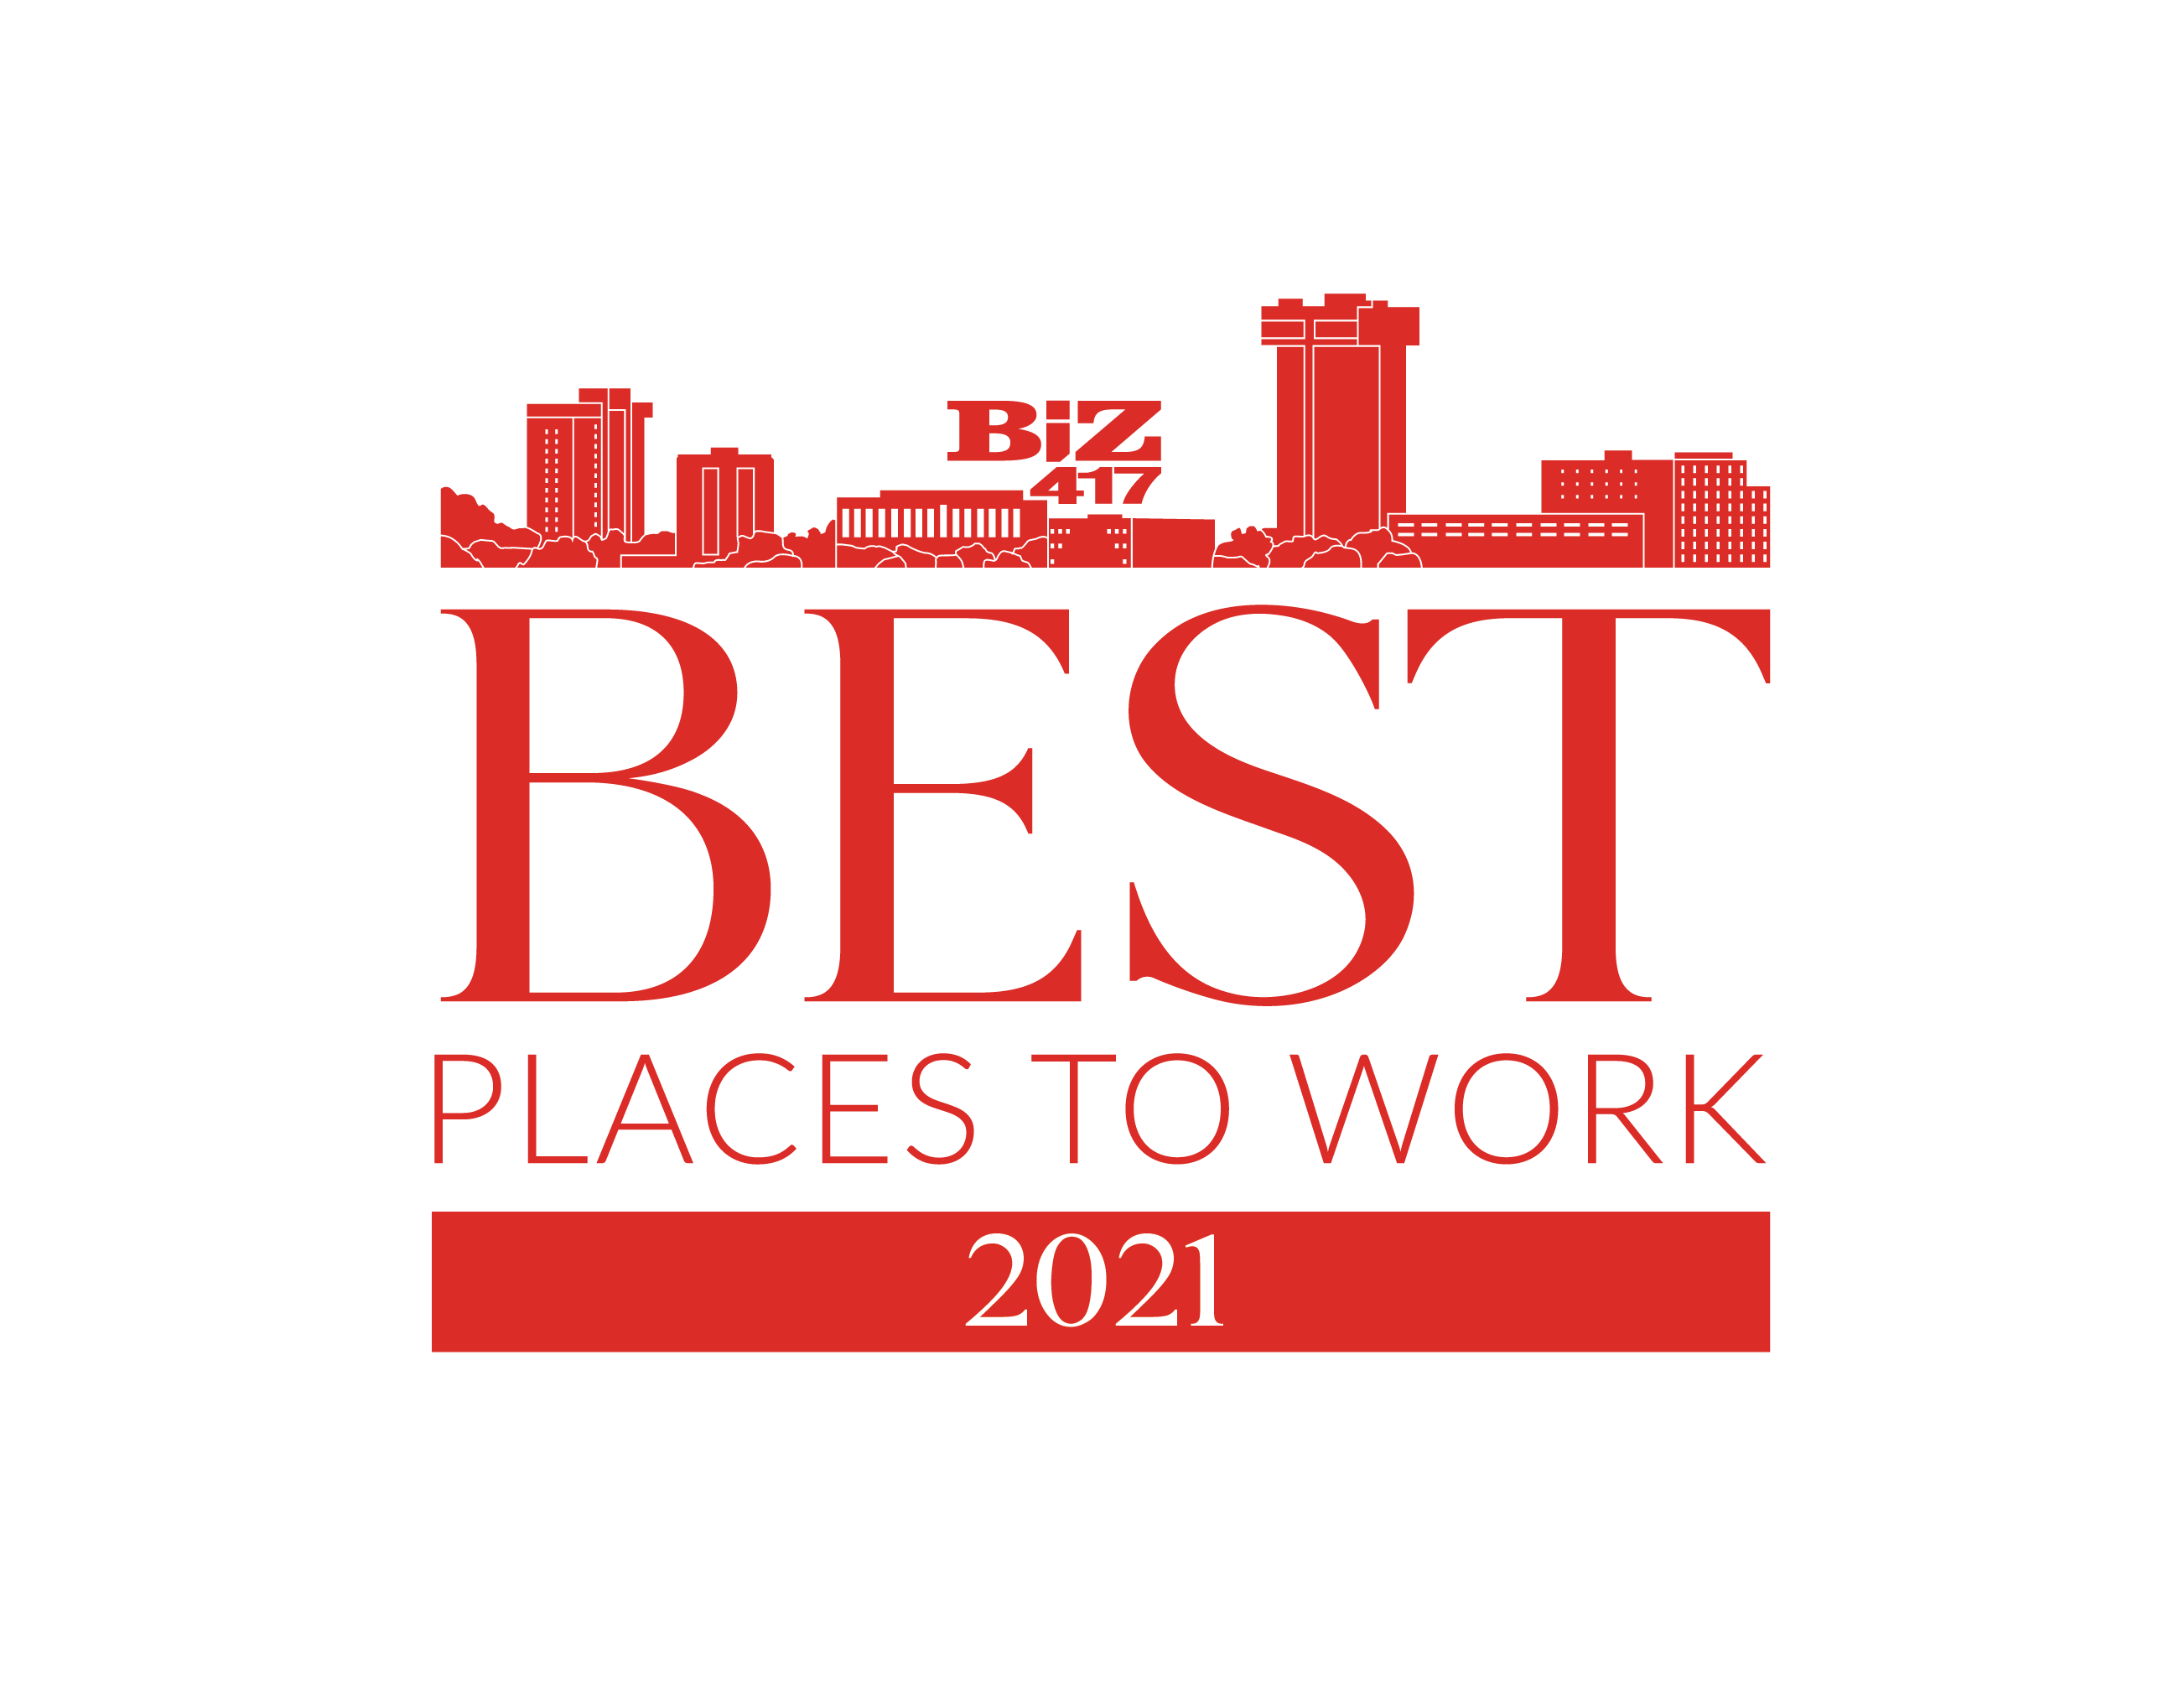 Top 20 Best Places to Work by Biz 417